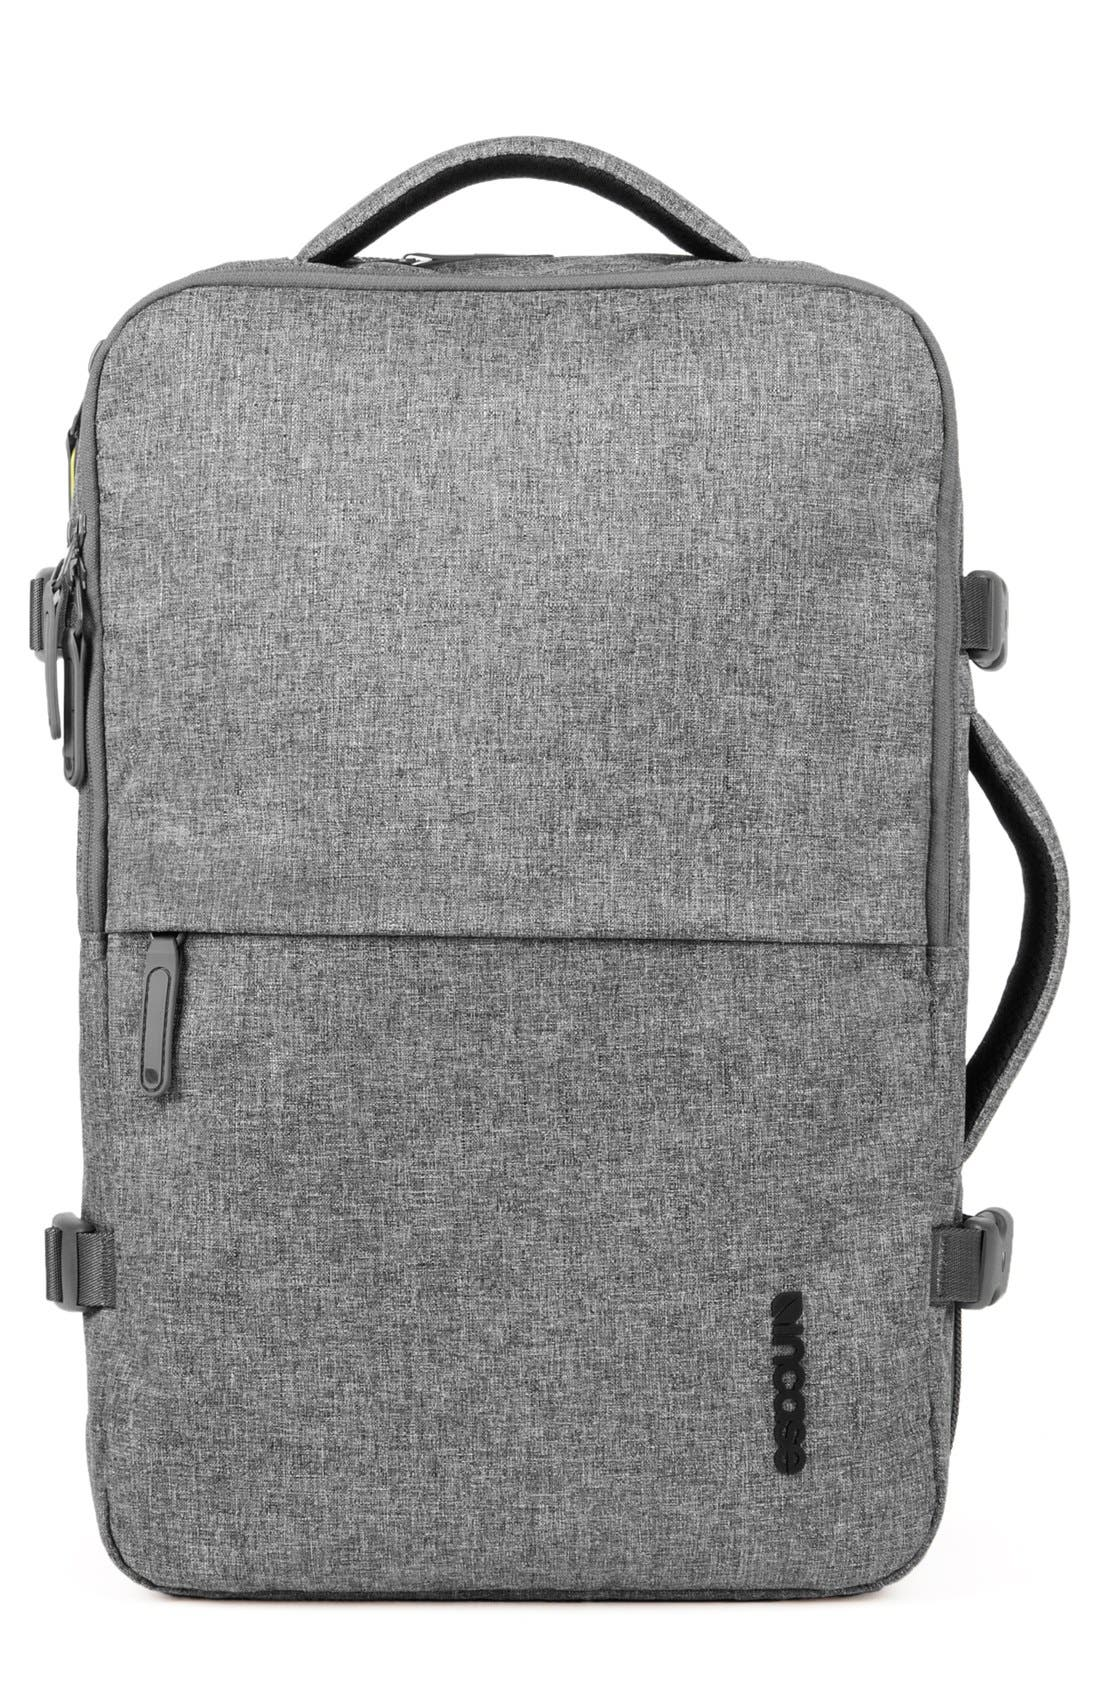 EO Travel Backpack,                             Main thumbnail 1, color,                             Heather Grey